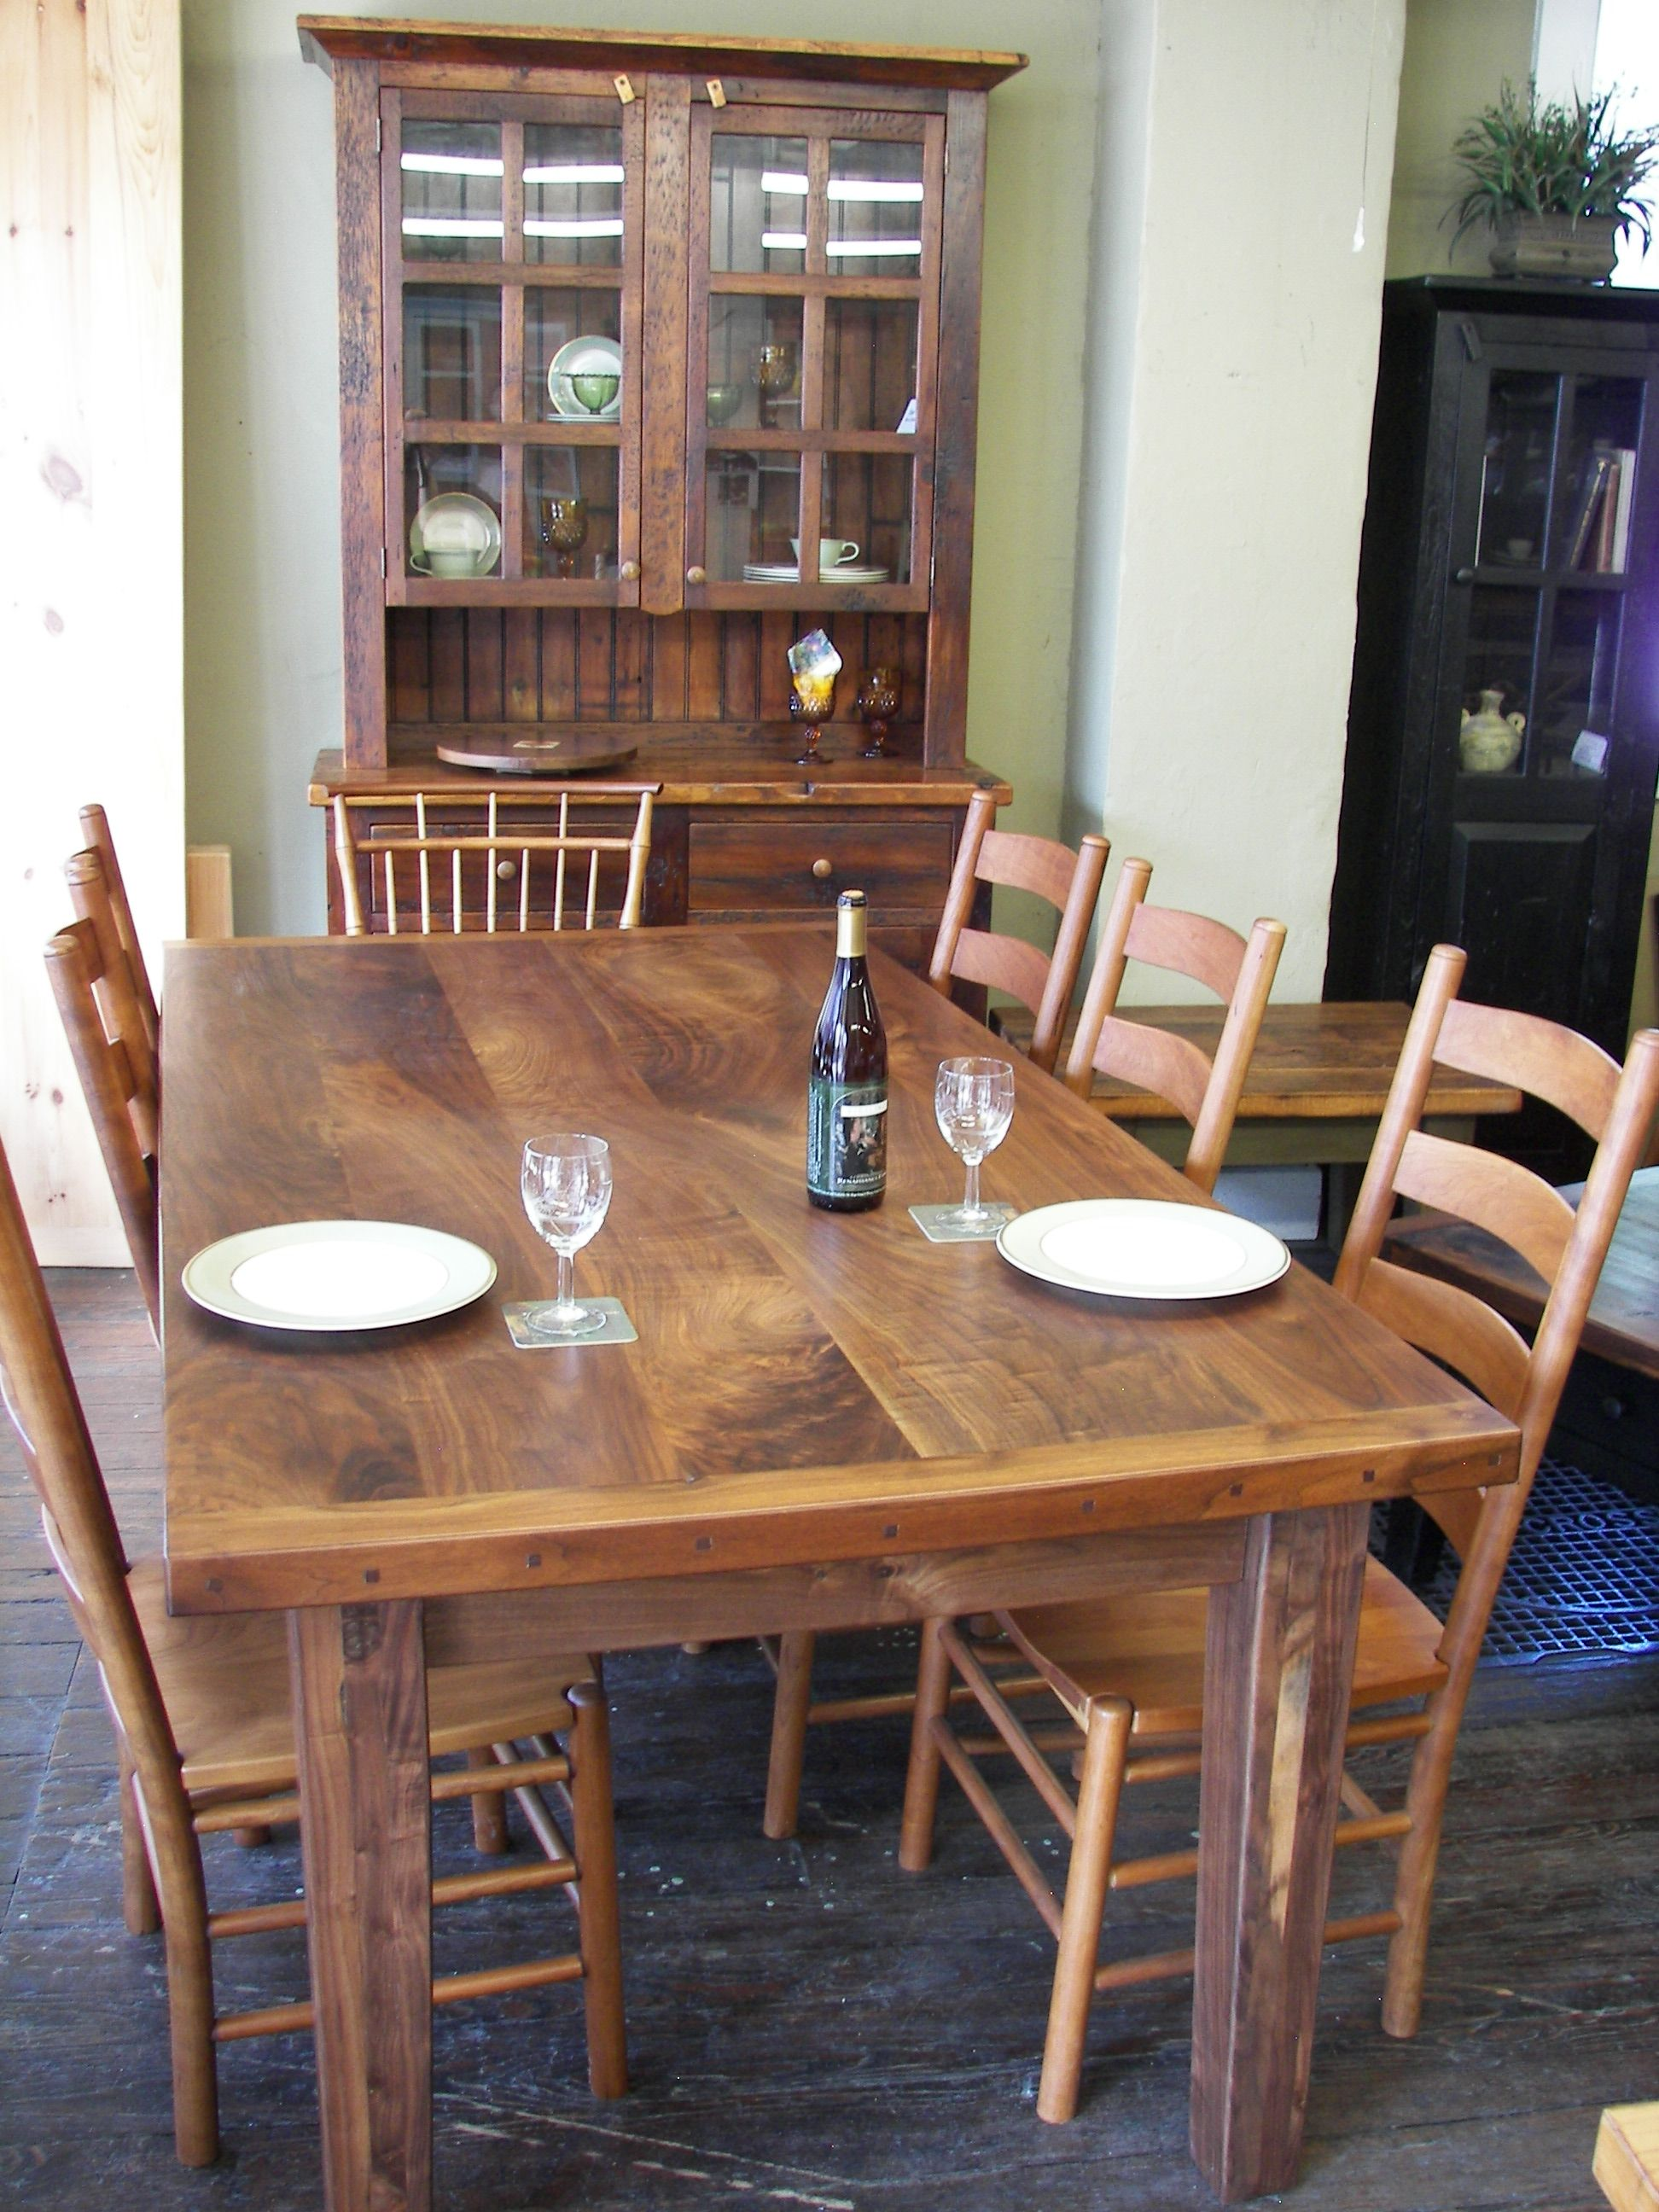 Black walnut has beautiful grain patterns farm table  : 50ab96393f4886ba66fbd4437d1c3934 from www.pinterest.com size 1944 x 2592 jpeg 1117kB